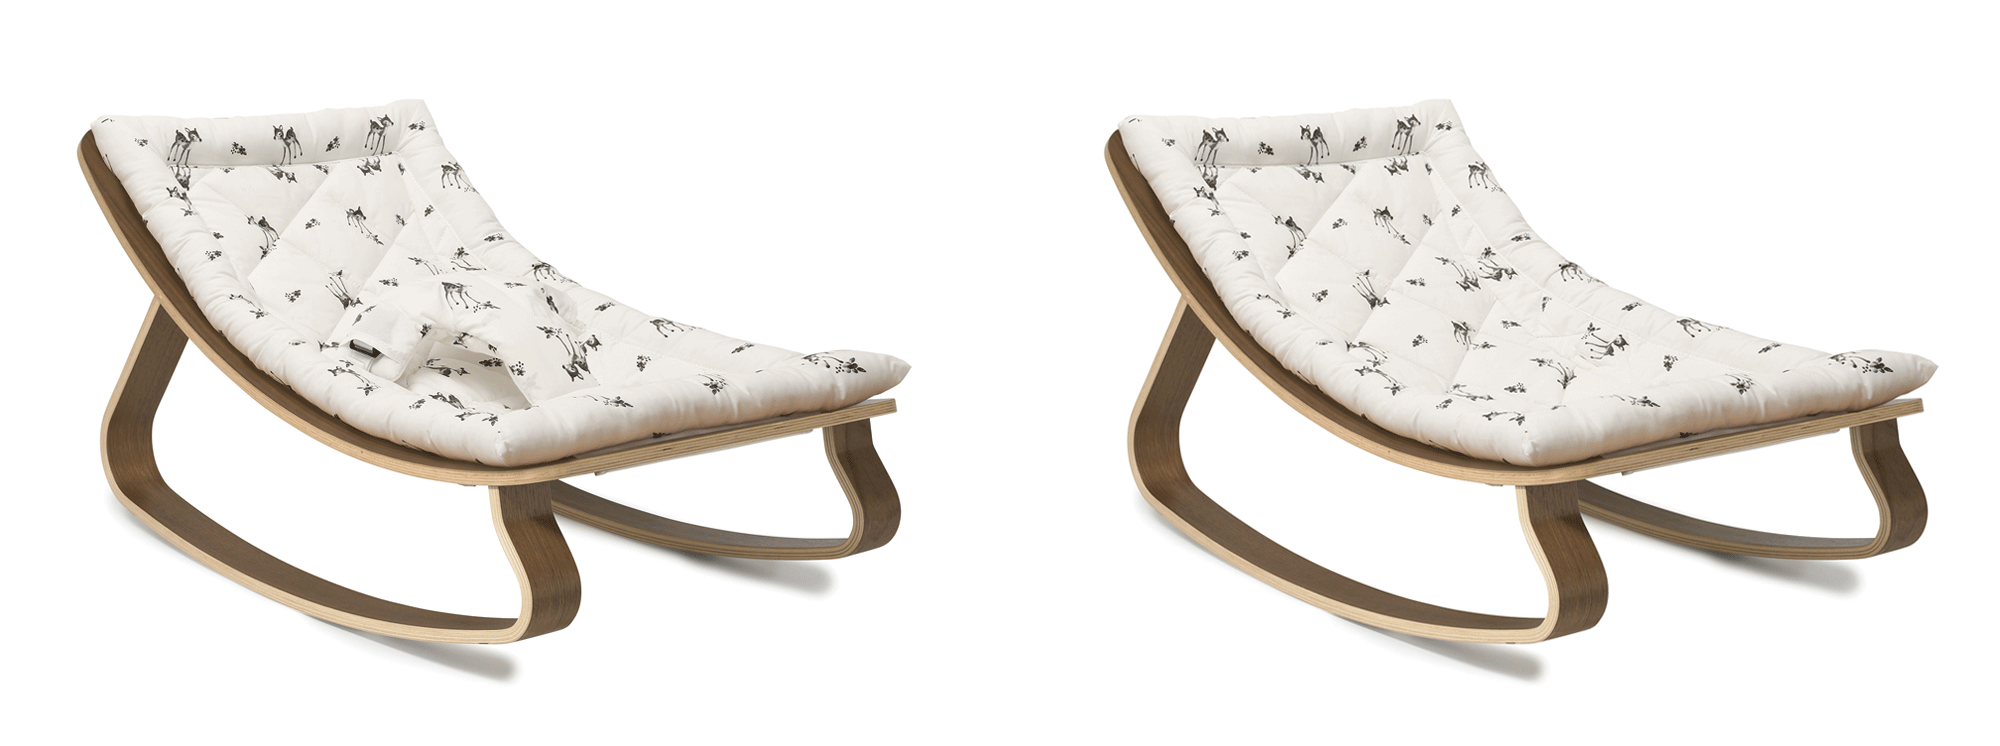 New Levo Rocker, Fawn Walnut, with and without harness